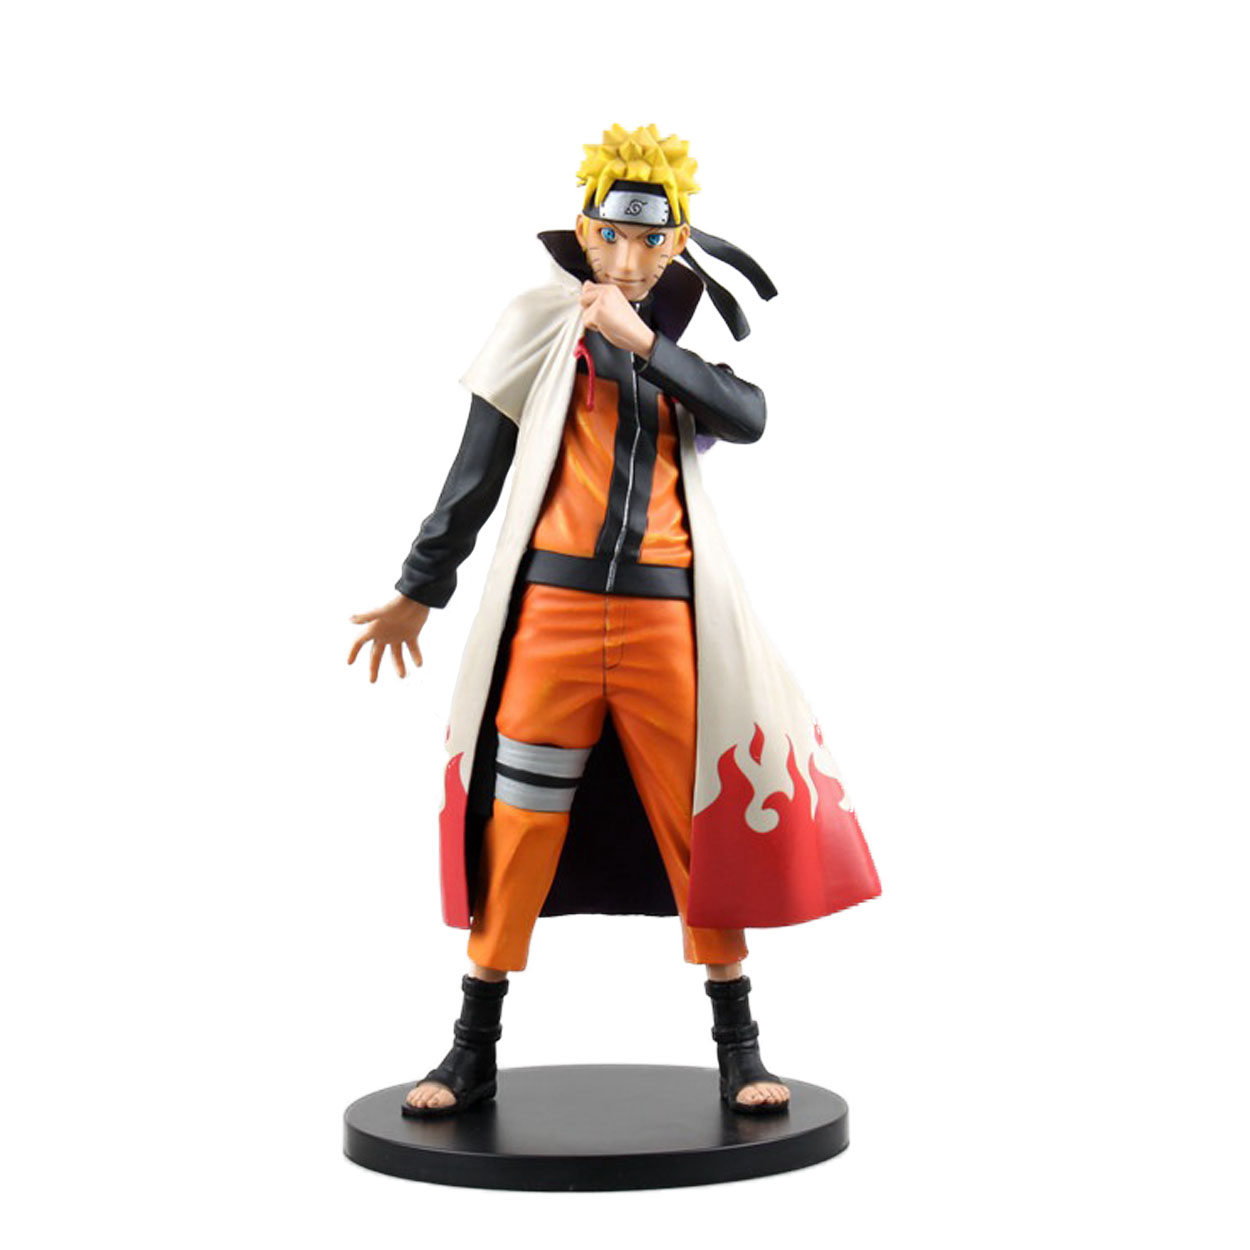 Chanycore 25CM Anime Naruto Uzumaki Naruto PVC Action Figure Collection Model Toy 1/6 Scale figure doll gift ACGN Brinquedos<br>